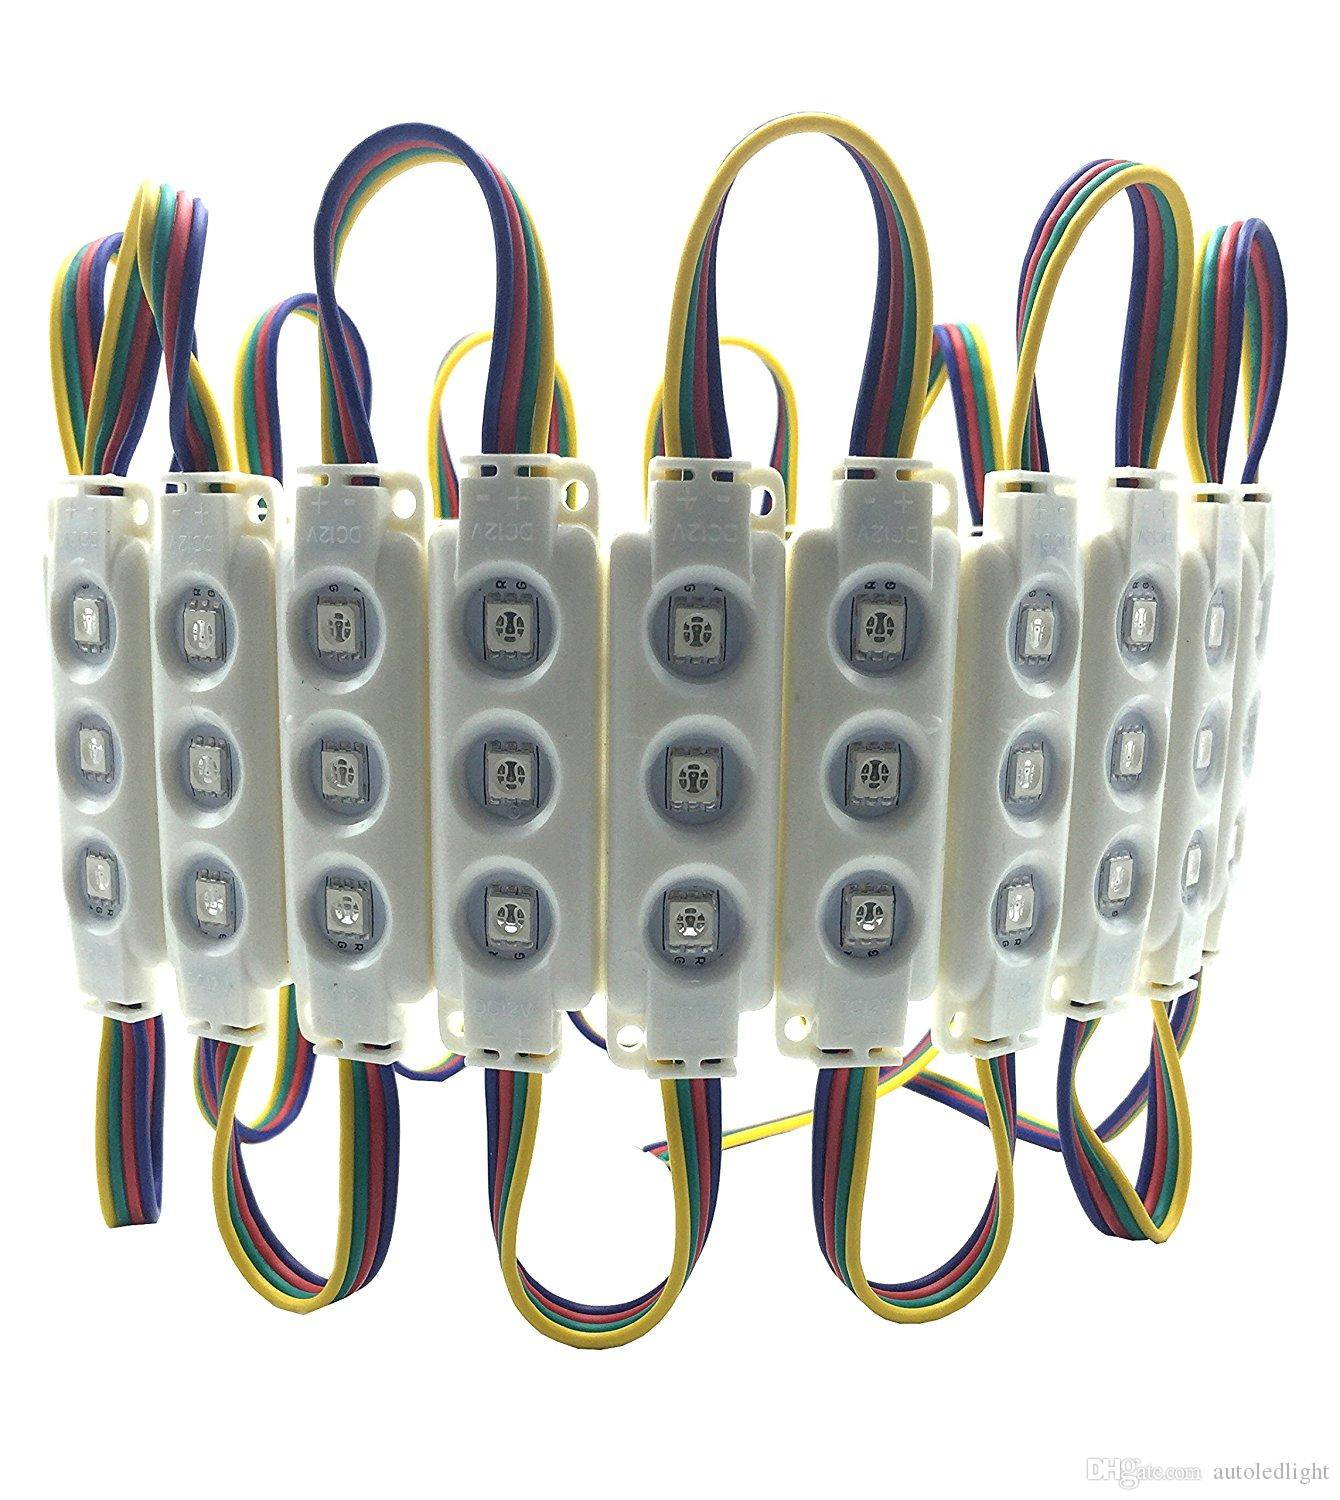 Holiday lighting 5050 Injection 3 LED module RGB Waterproof DC12V modules For Channel Letters sign letter lights